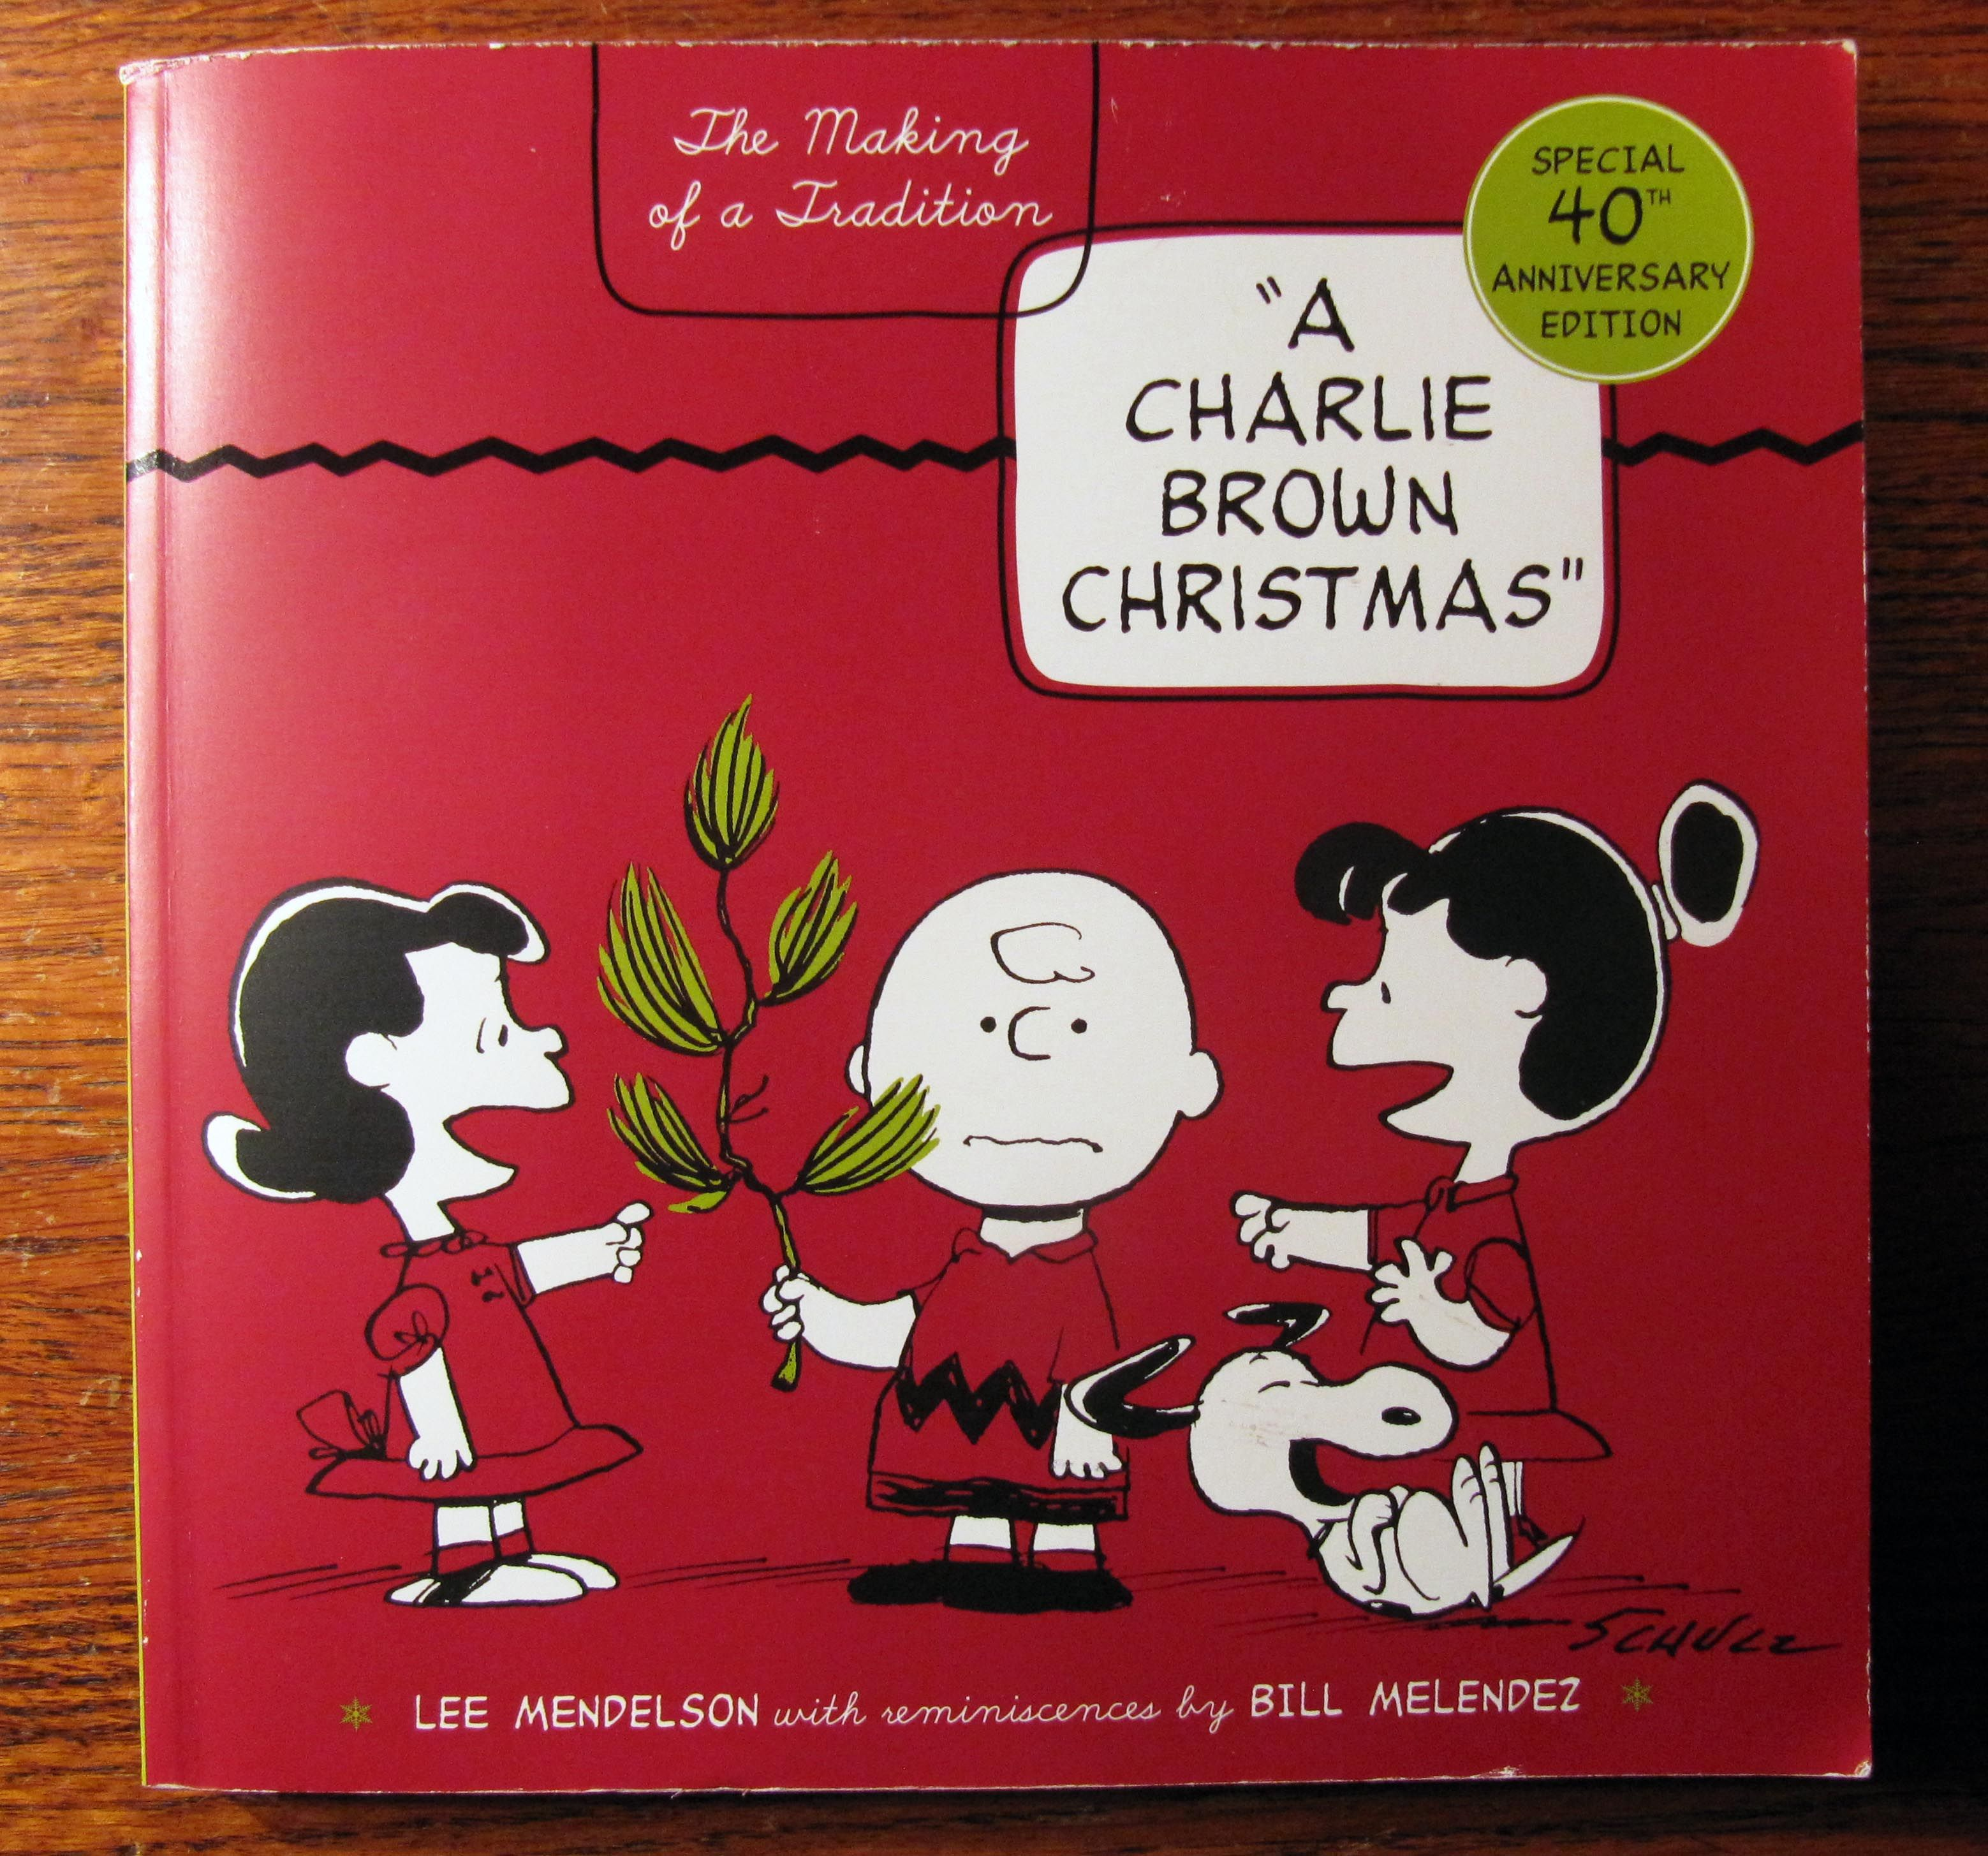 A Charlie Brown Christmas Book.A Charlie Brown Christmas The Making Of A Tradition By Lee Mendelson Paperback Signed First Edition 2005 From Collectible Book Shoppe And